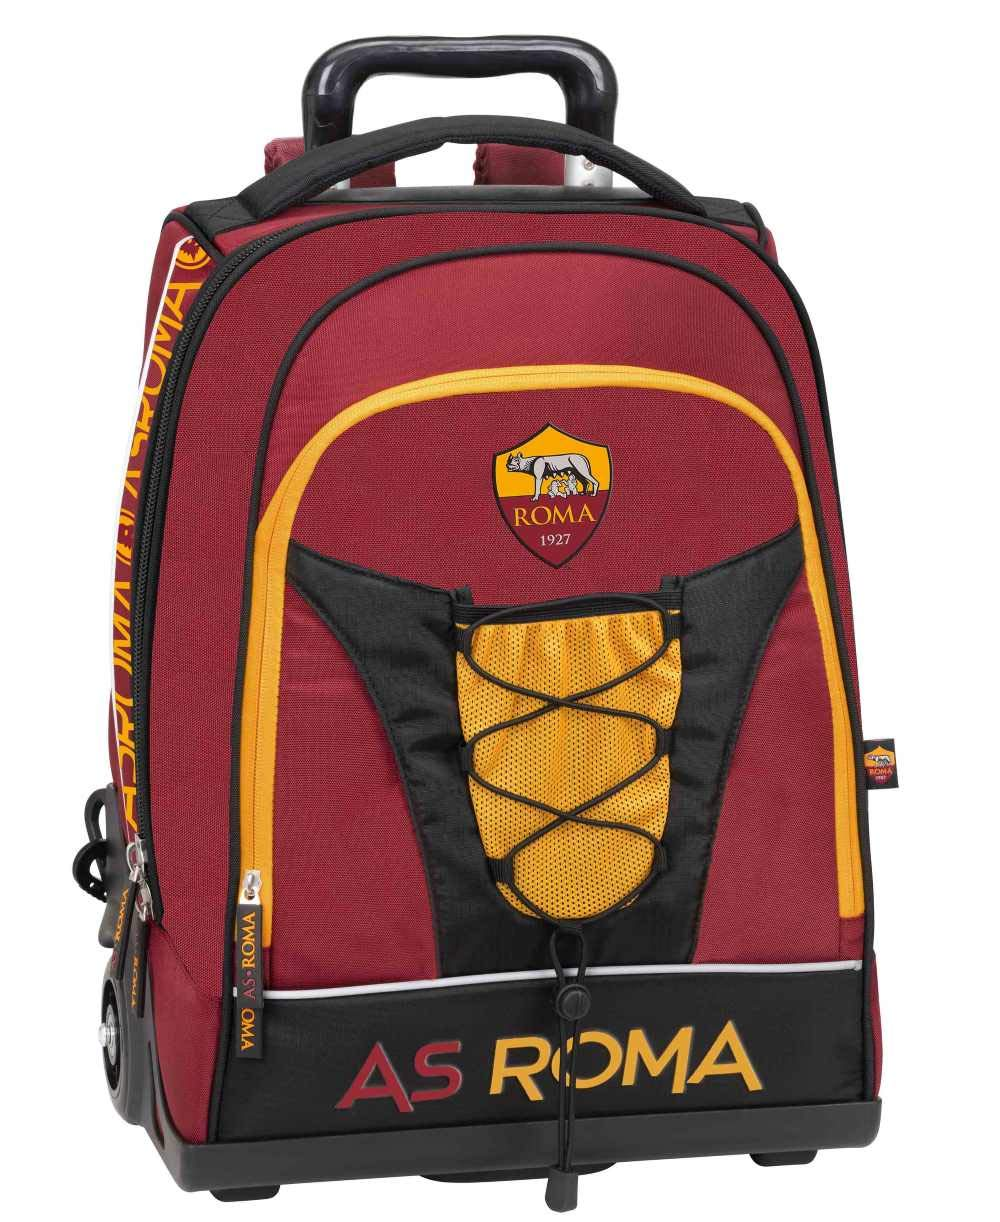 design innovativo ff5ee a2962 AS ROMA 1927 TROLLEY ZAINO SCUOLA/VIAGGIO 2019/20 - Dixyland